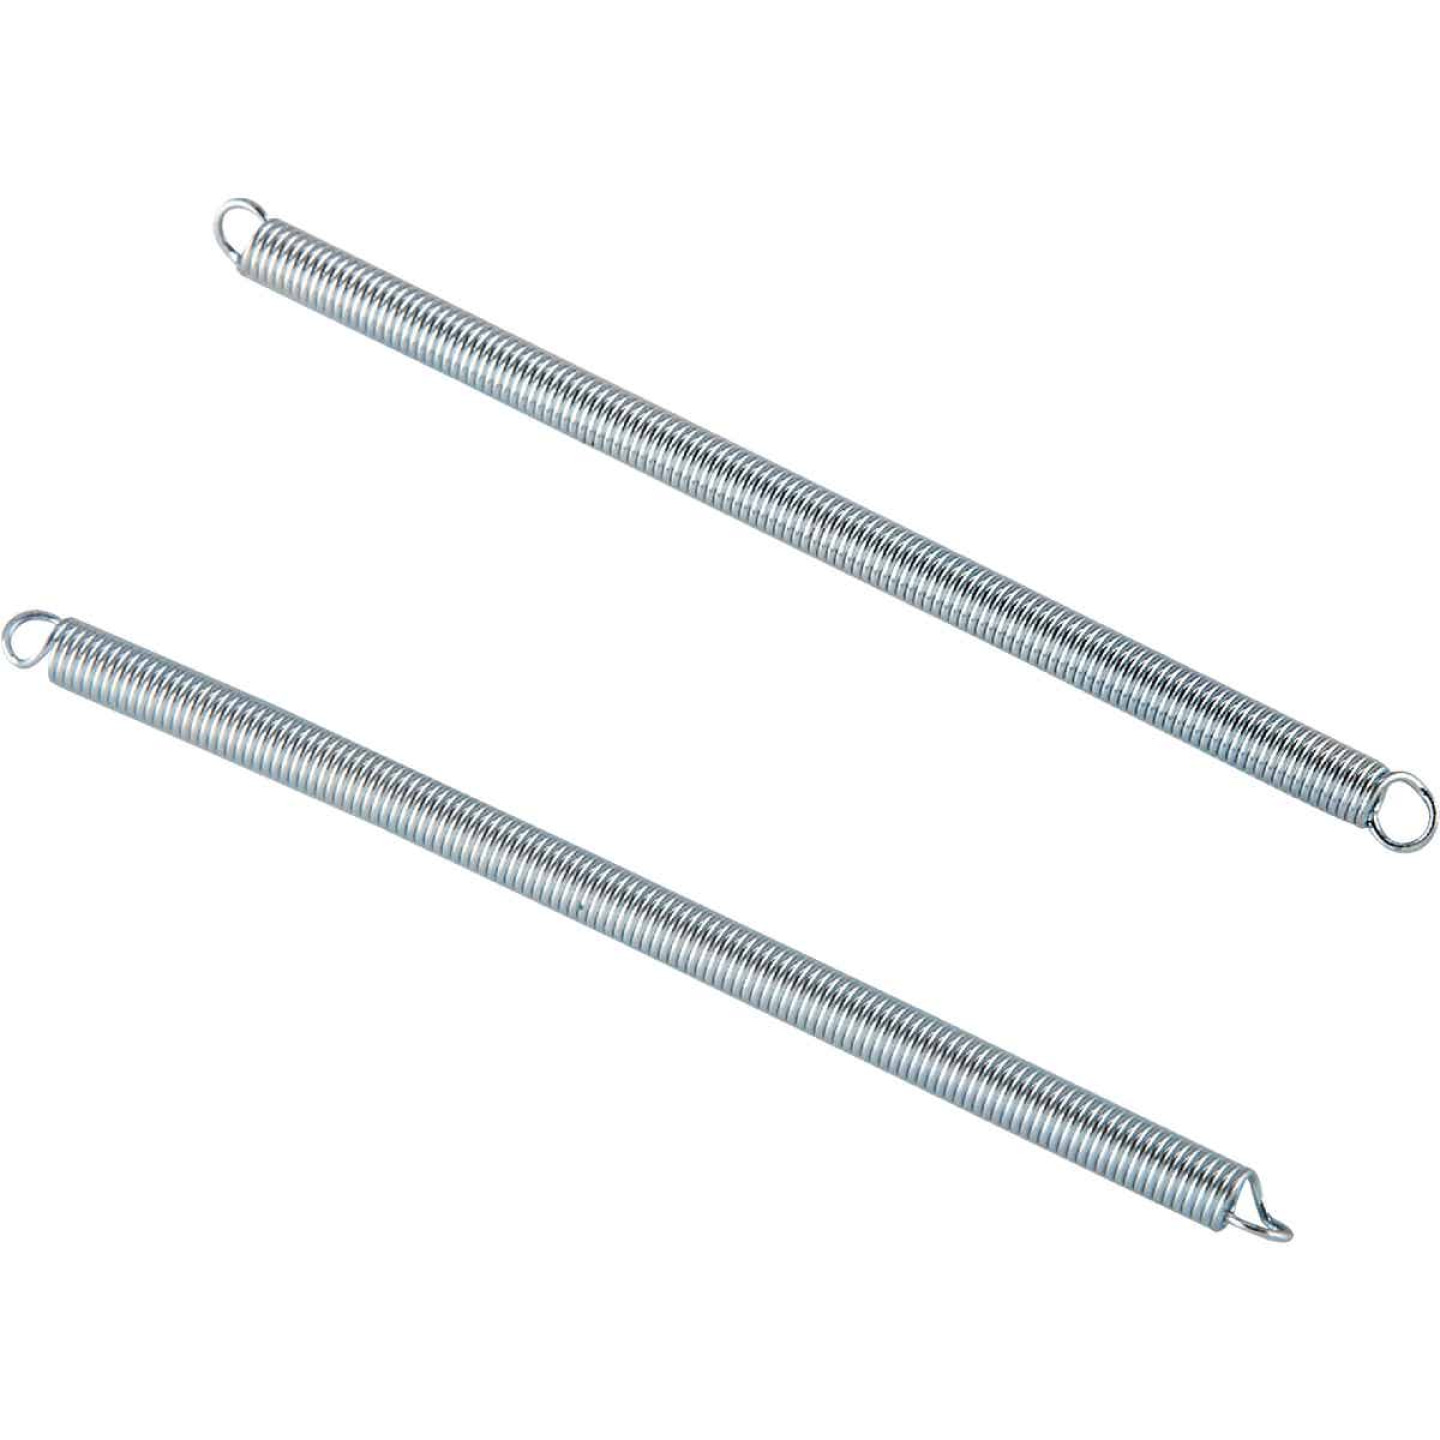 Century Spring 4 In. x 13/16 In. Extension Spring (2 Count) Image 1